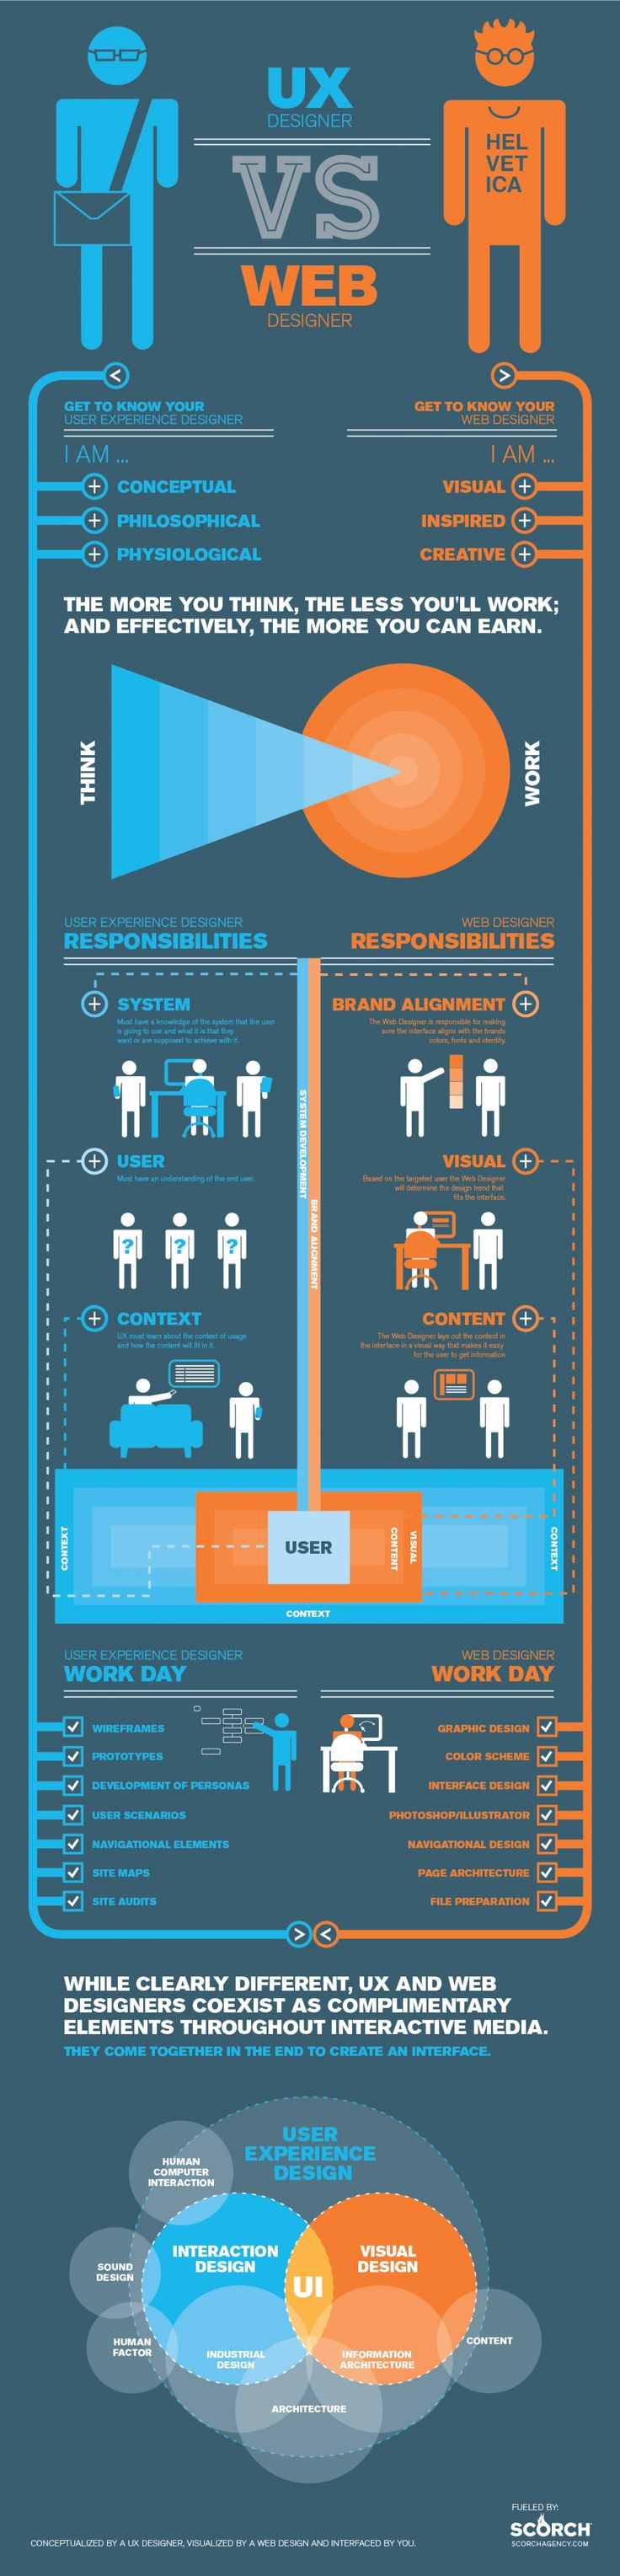 UX Designers vs Web Designers - What are some of the basic differences between a UX Designer and a Web Designer.